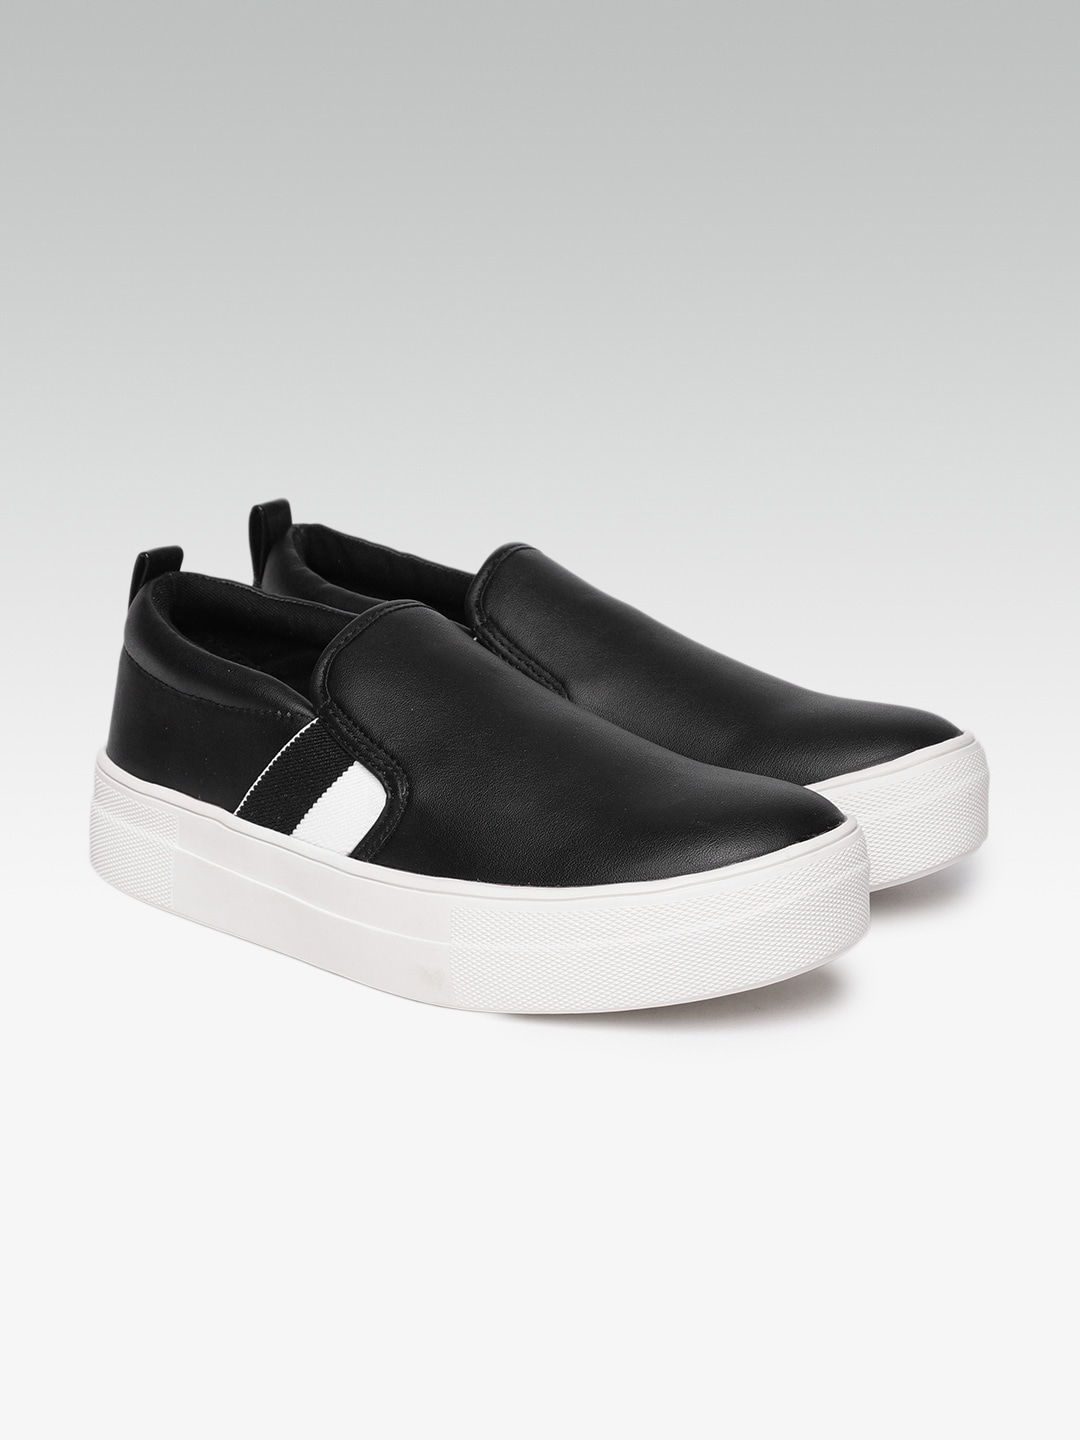 3fa80cab769 Steve Madden Shoes - Buy Steve Madden Shoes Online in India